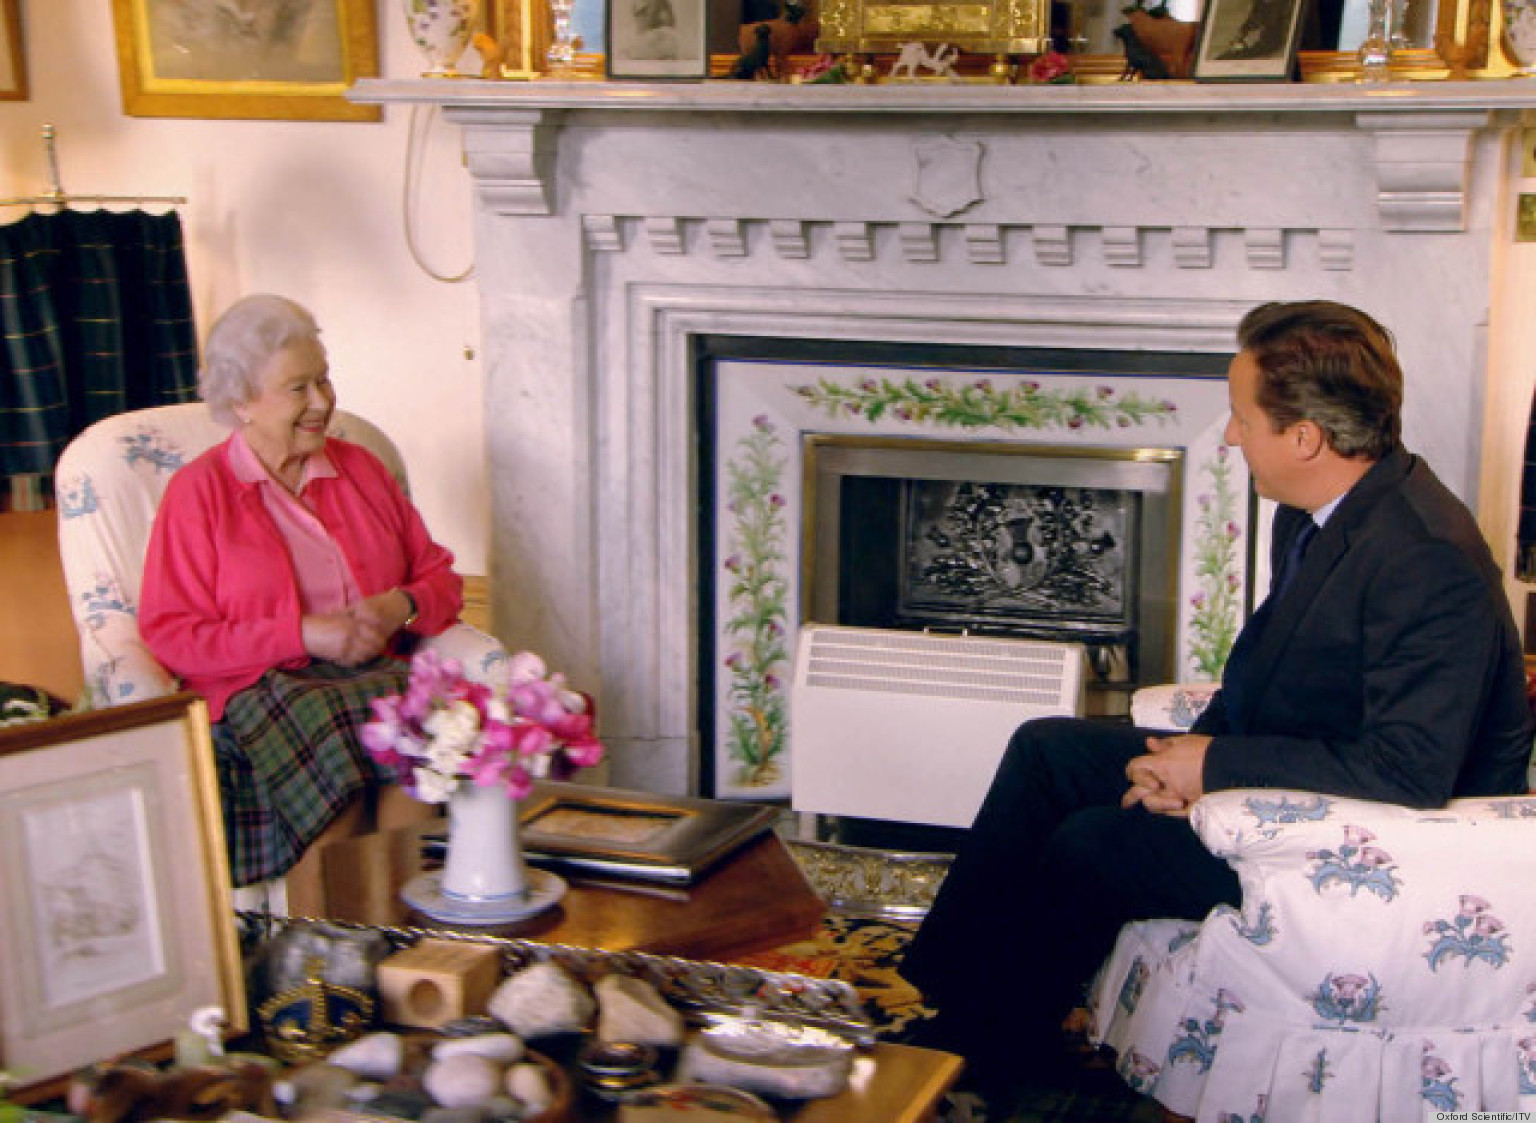 Queen Elizabeth Ii 39 S Private Sitting Room In Balmoral